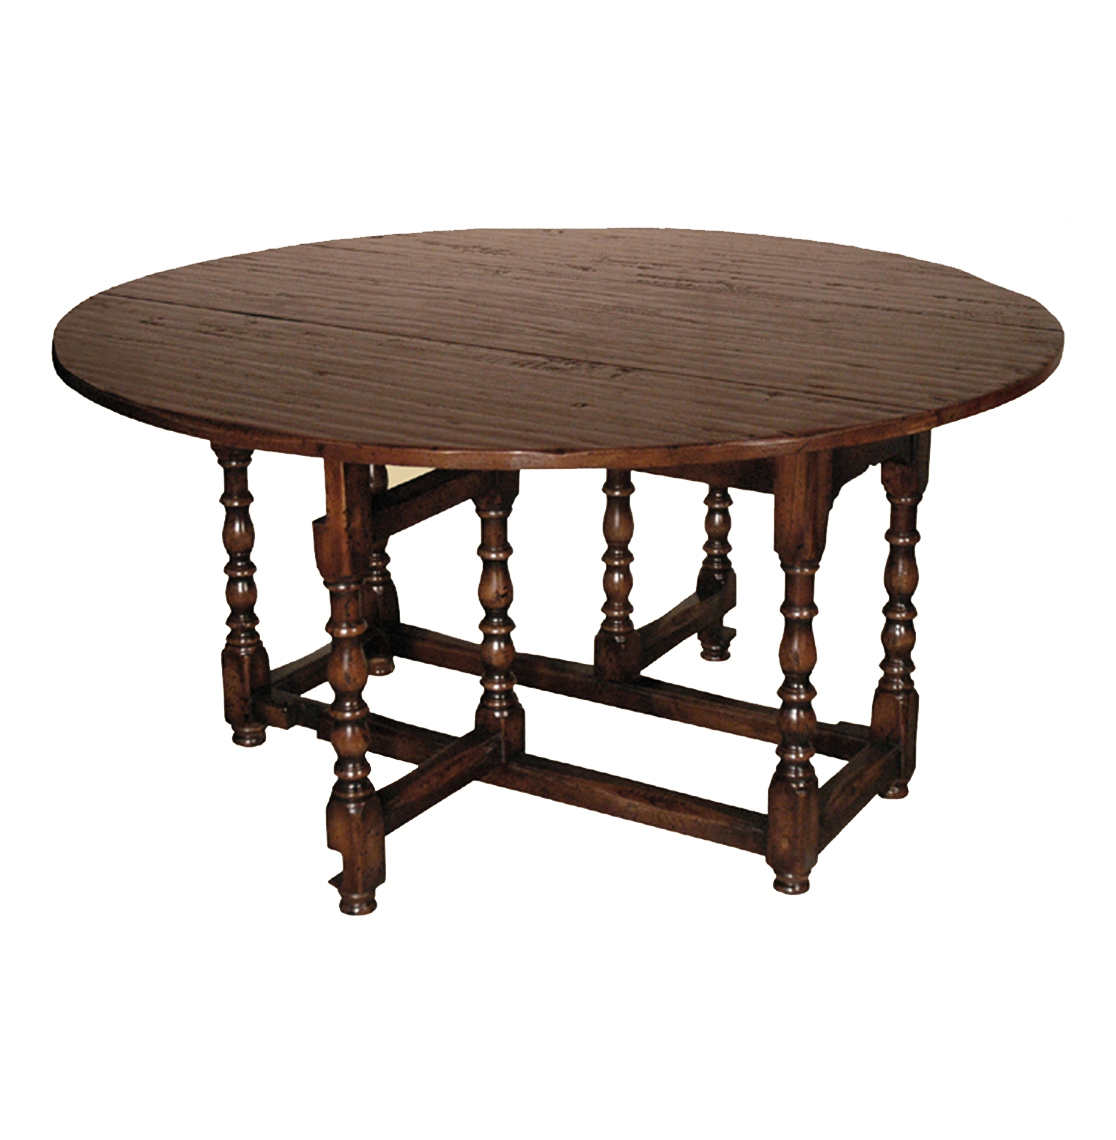 English Tudor Style Rustic Gate Leg Drop Leaf Dining Table : product4475 from www.kathykuohome.com size 1116 x 1140 jpeg 310kB